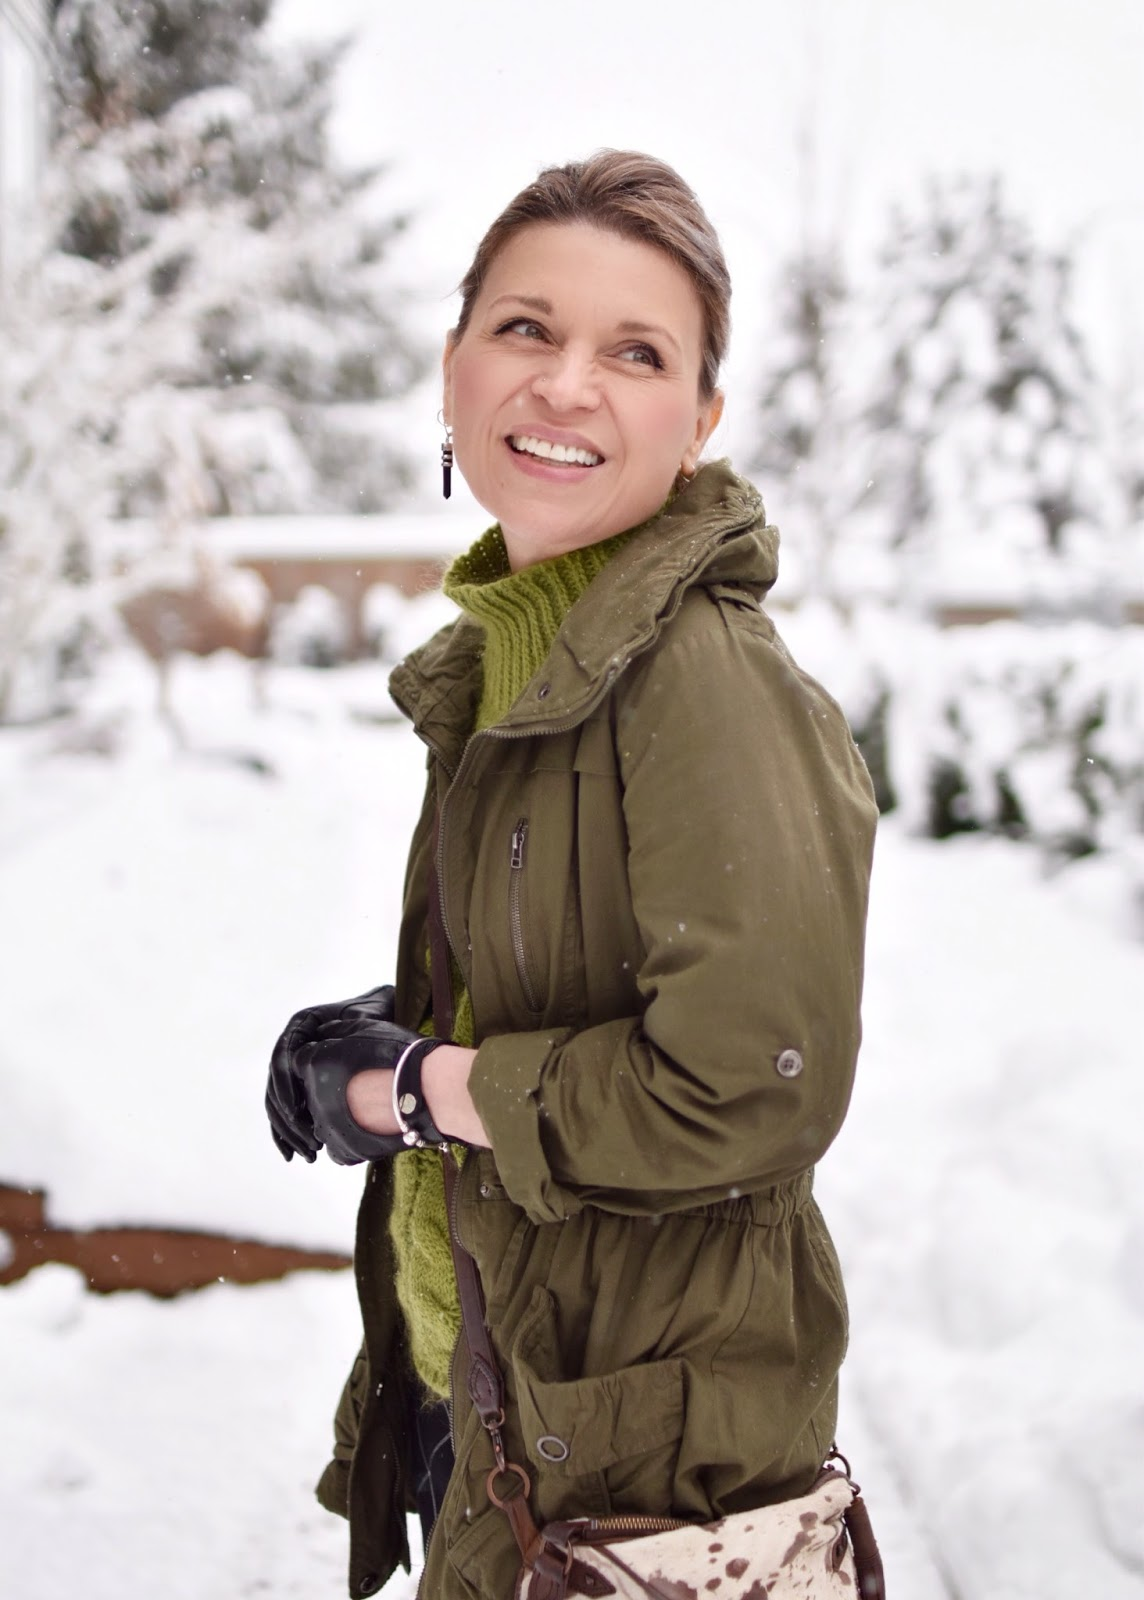 Monika Faulkner outfit inspiration - green mohair sweater, army-inspired parka, driving gloves, cross-body bag